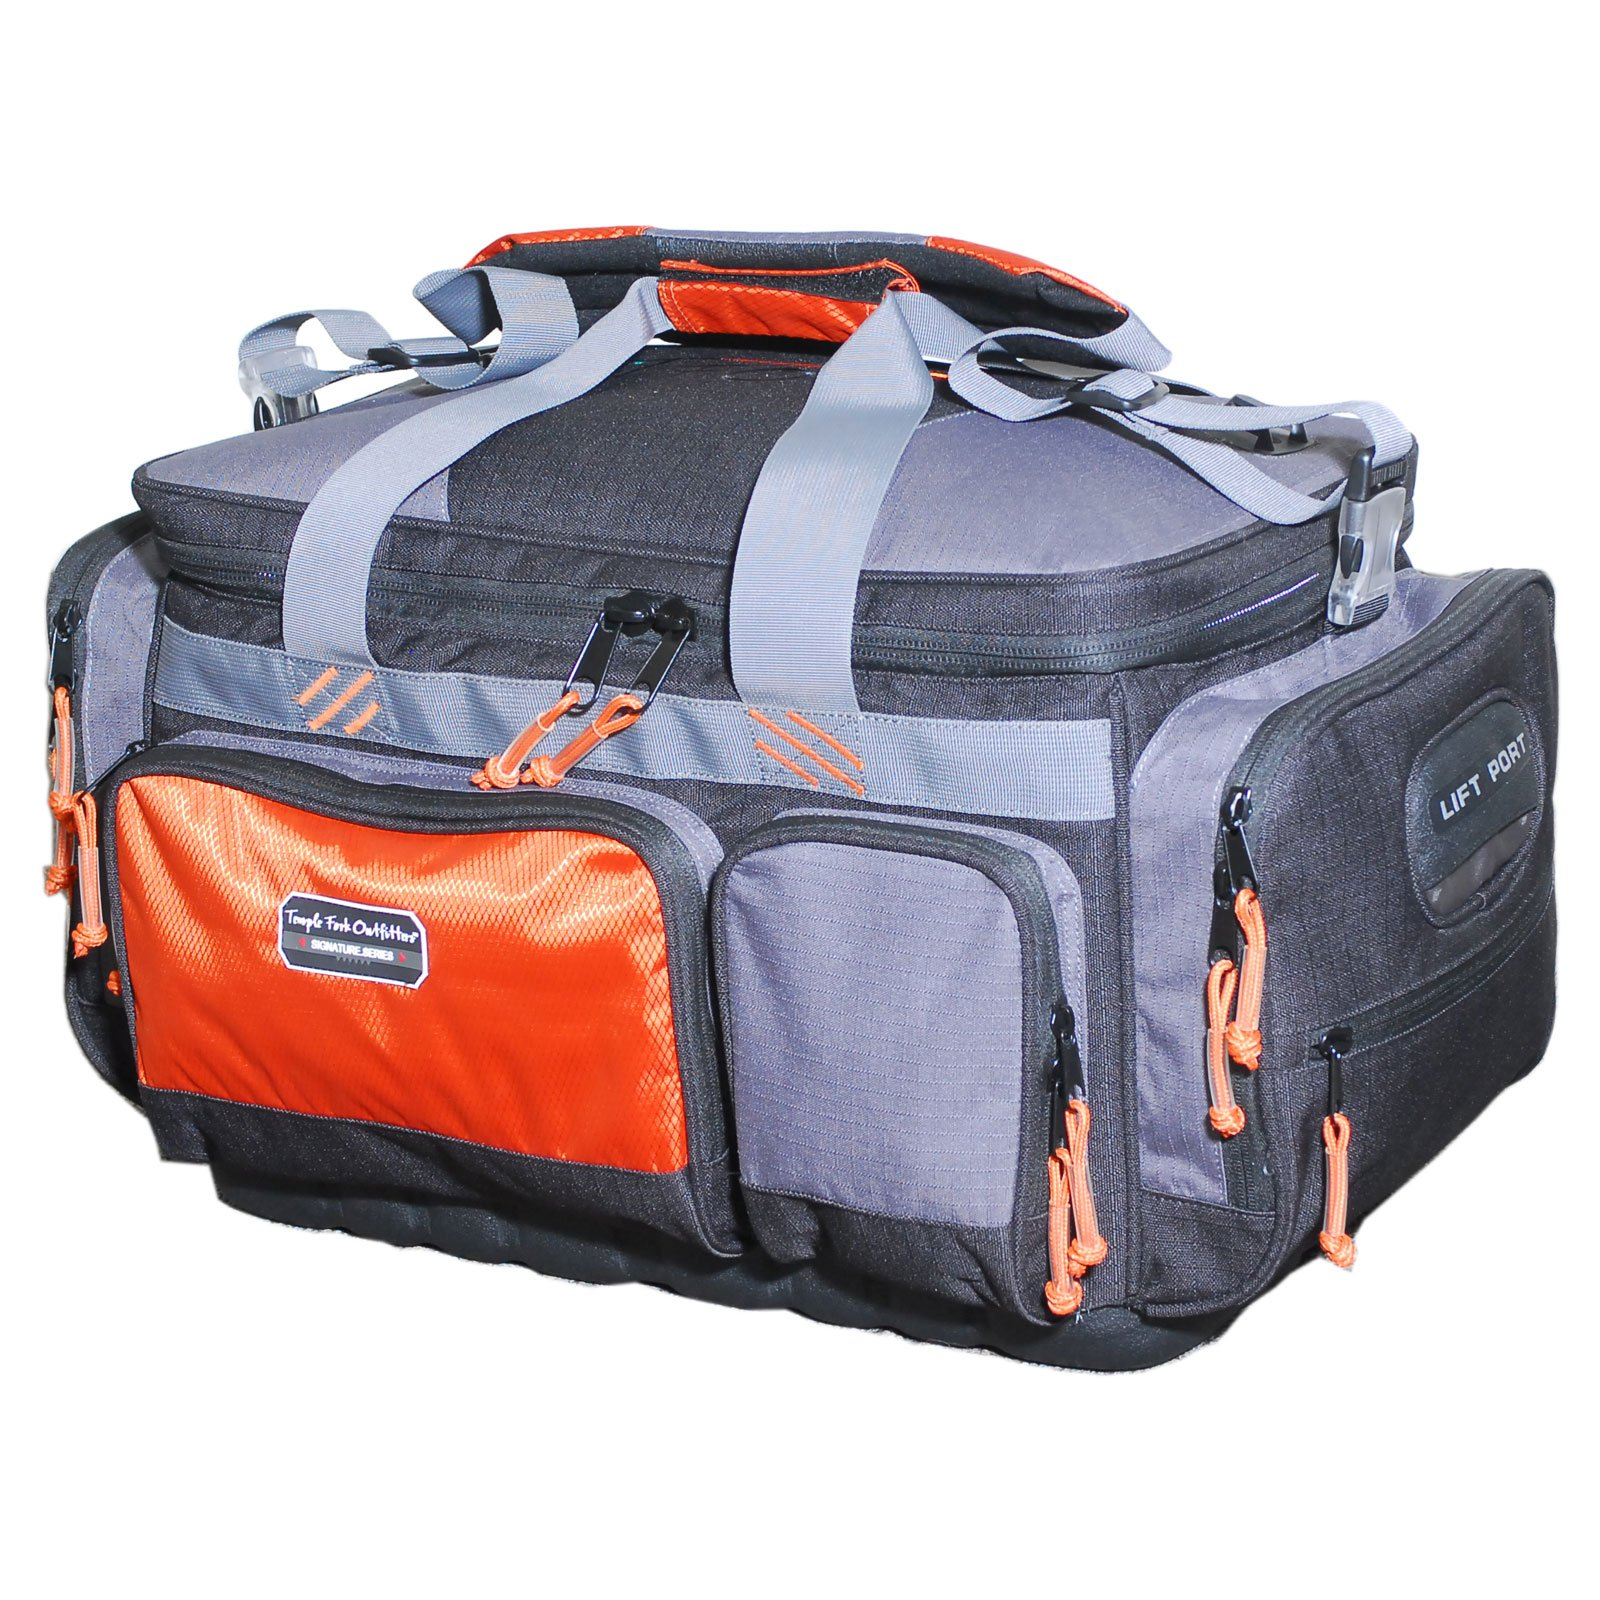 TFO Carry All Fishing Bag-Large Size Fly Duffel Durable Non Slip Boat by 30-06 OUTDOORS LLC